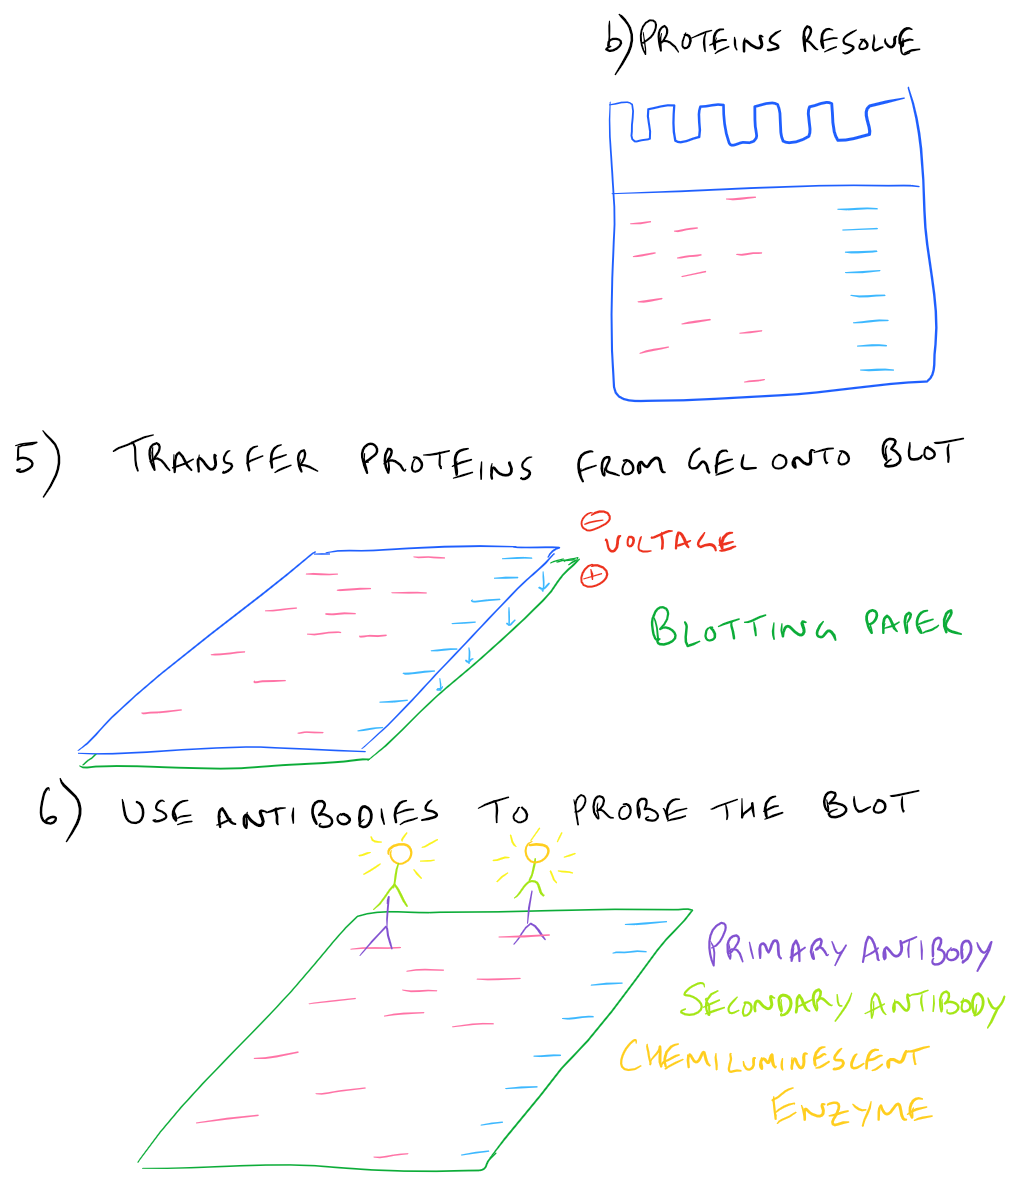 Western Blot Step By Step